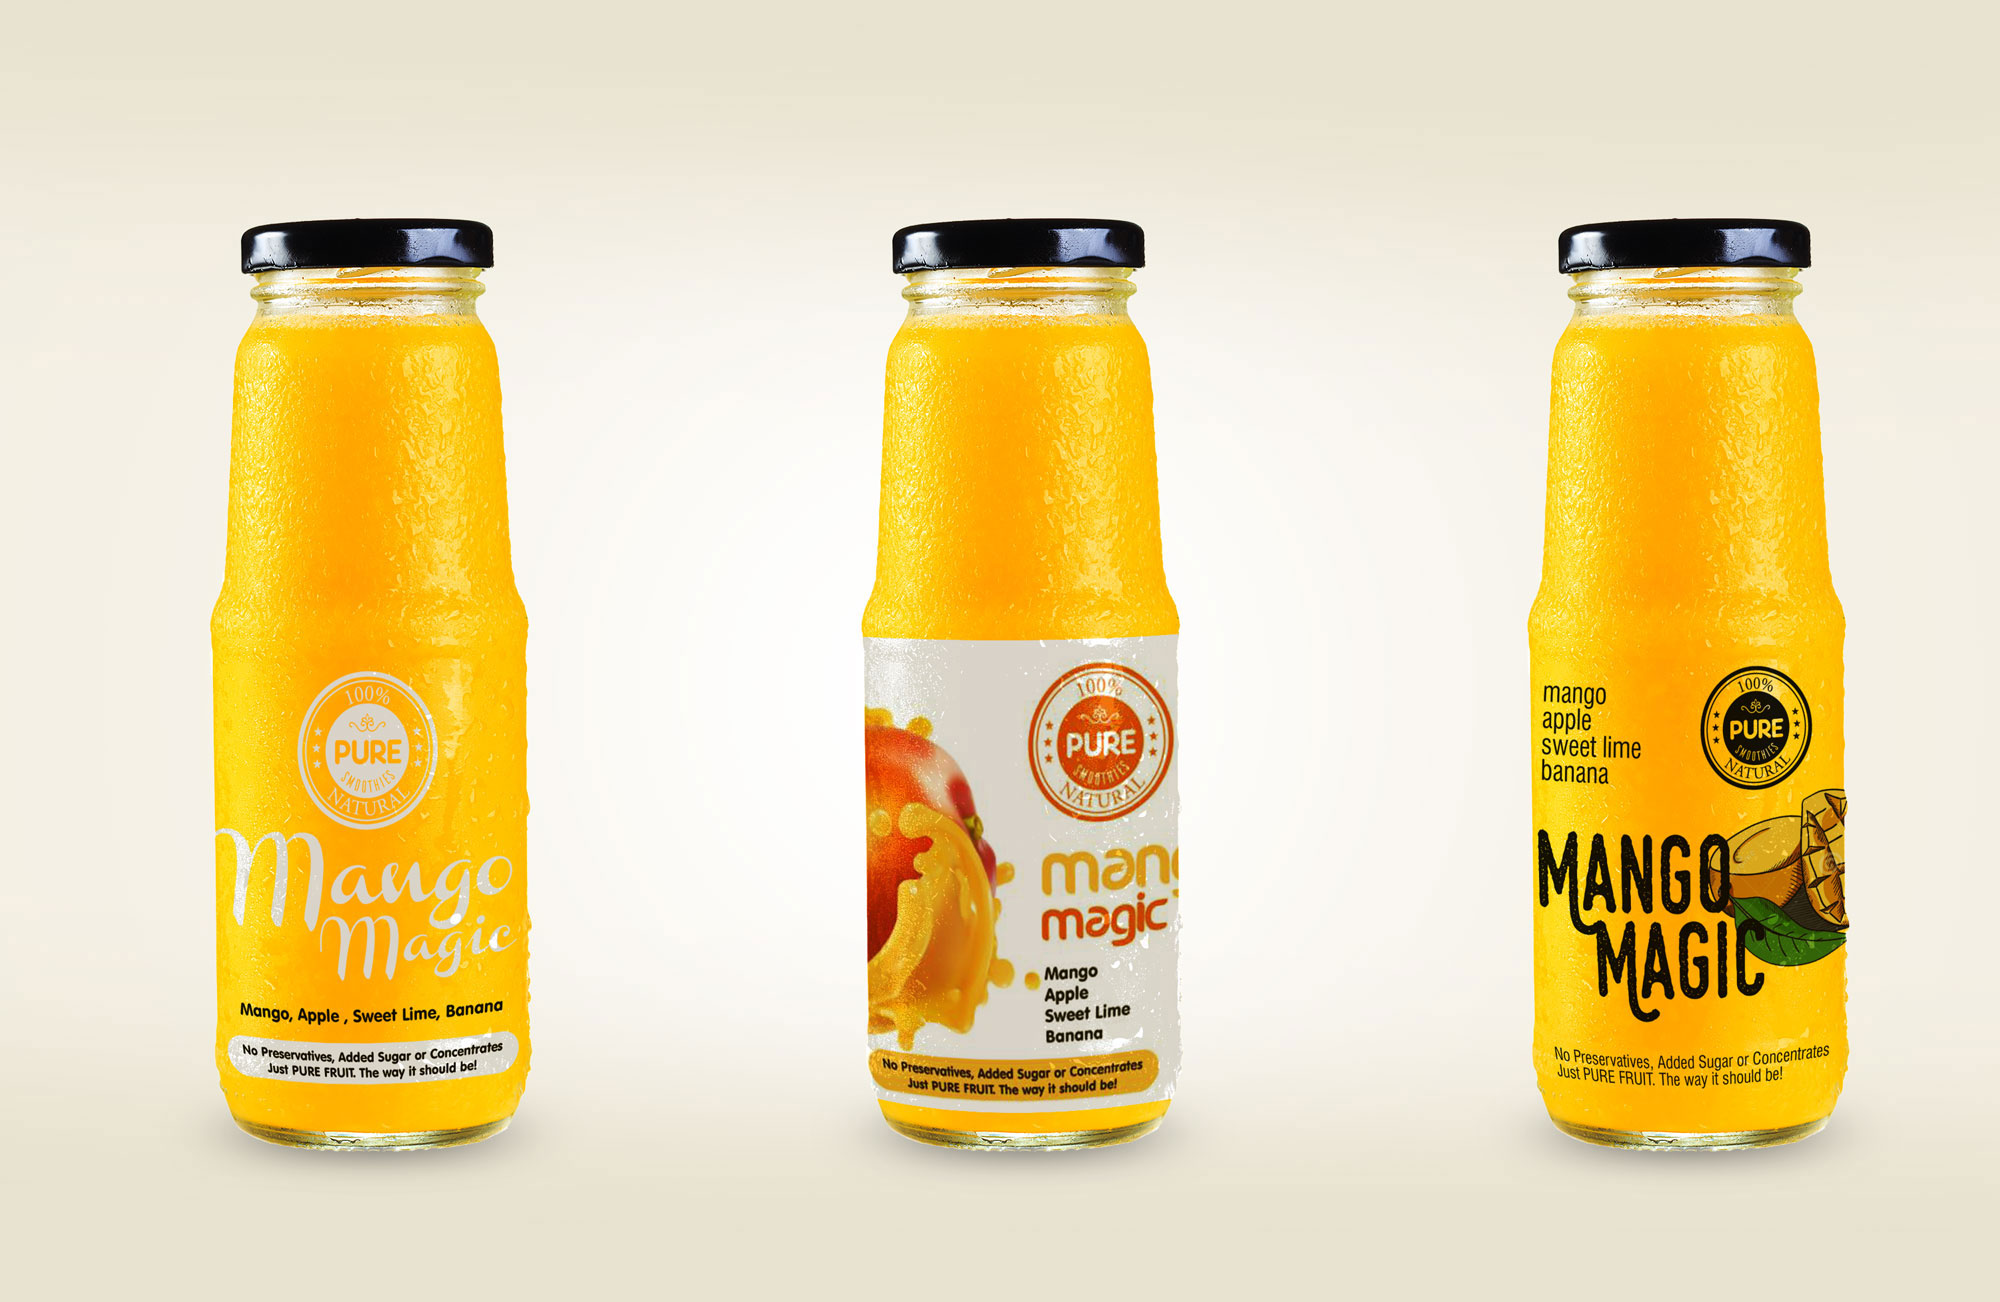 Mango magic Packaging Design bottle for Pure smoothies